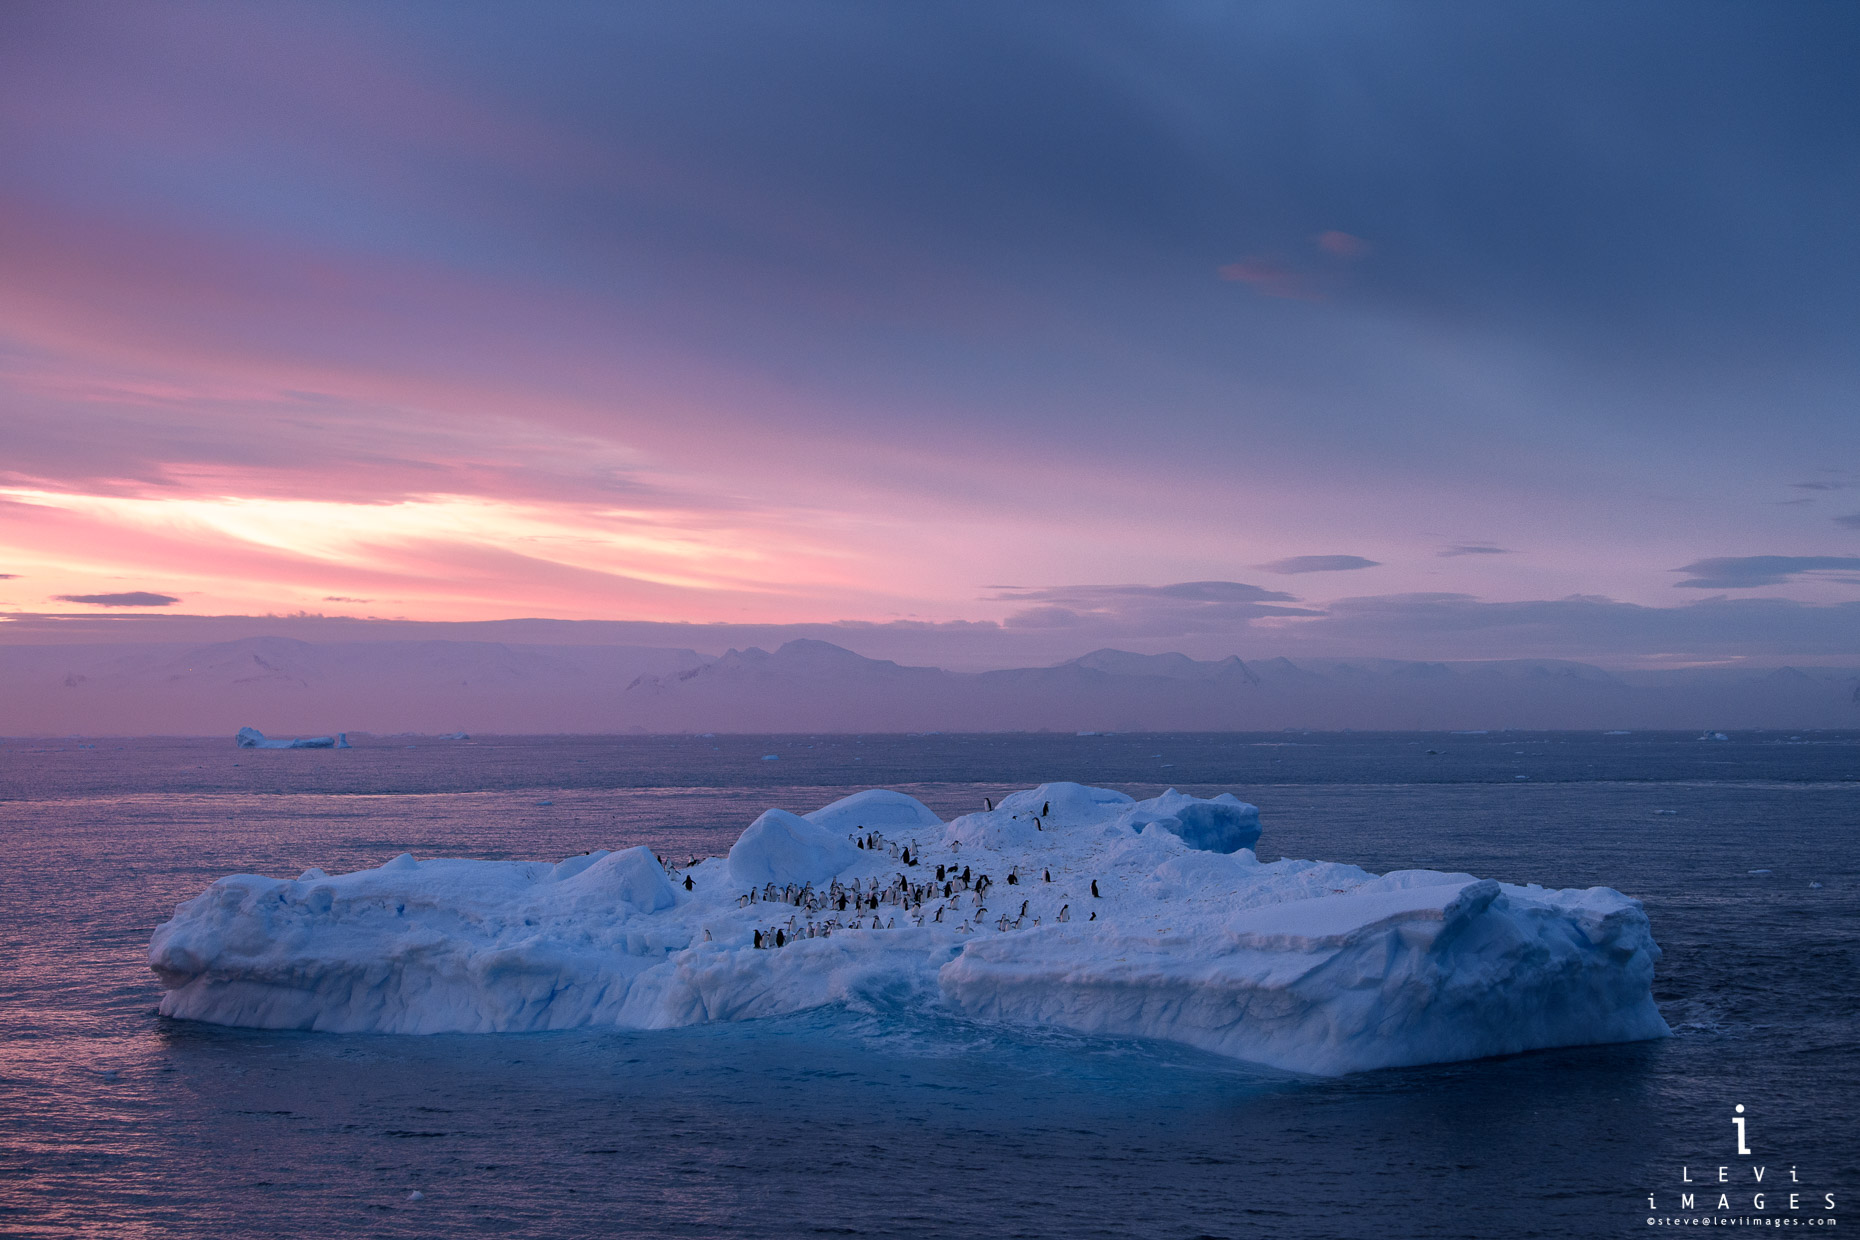 chinstrap Penguins on iceberg in pre-dawn light. Antarctic Sound, Antarctica